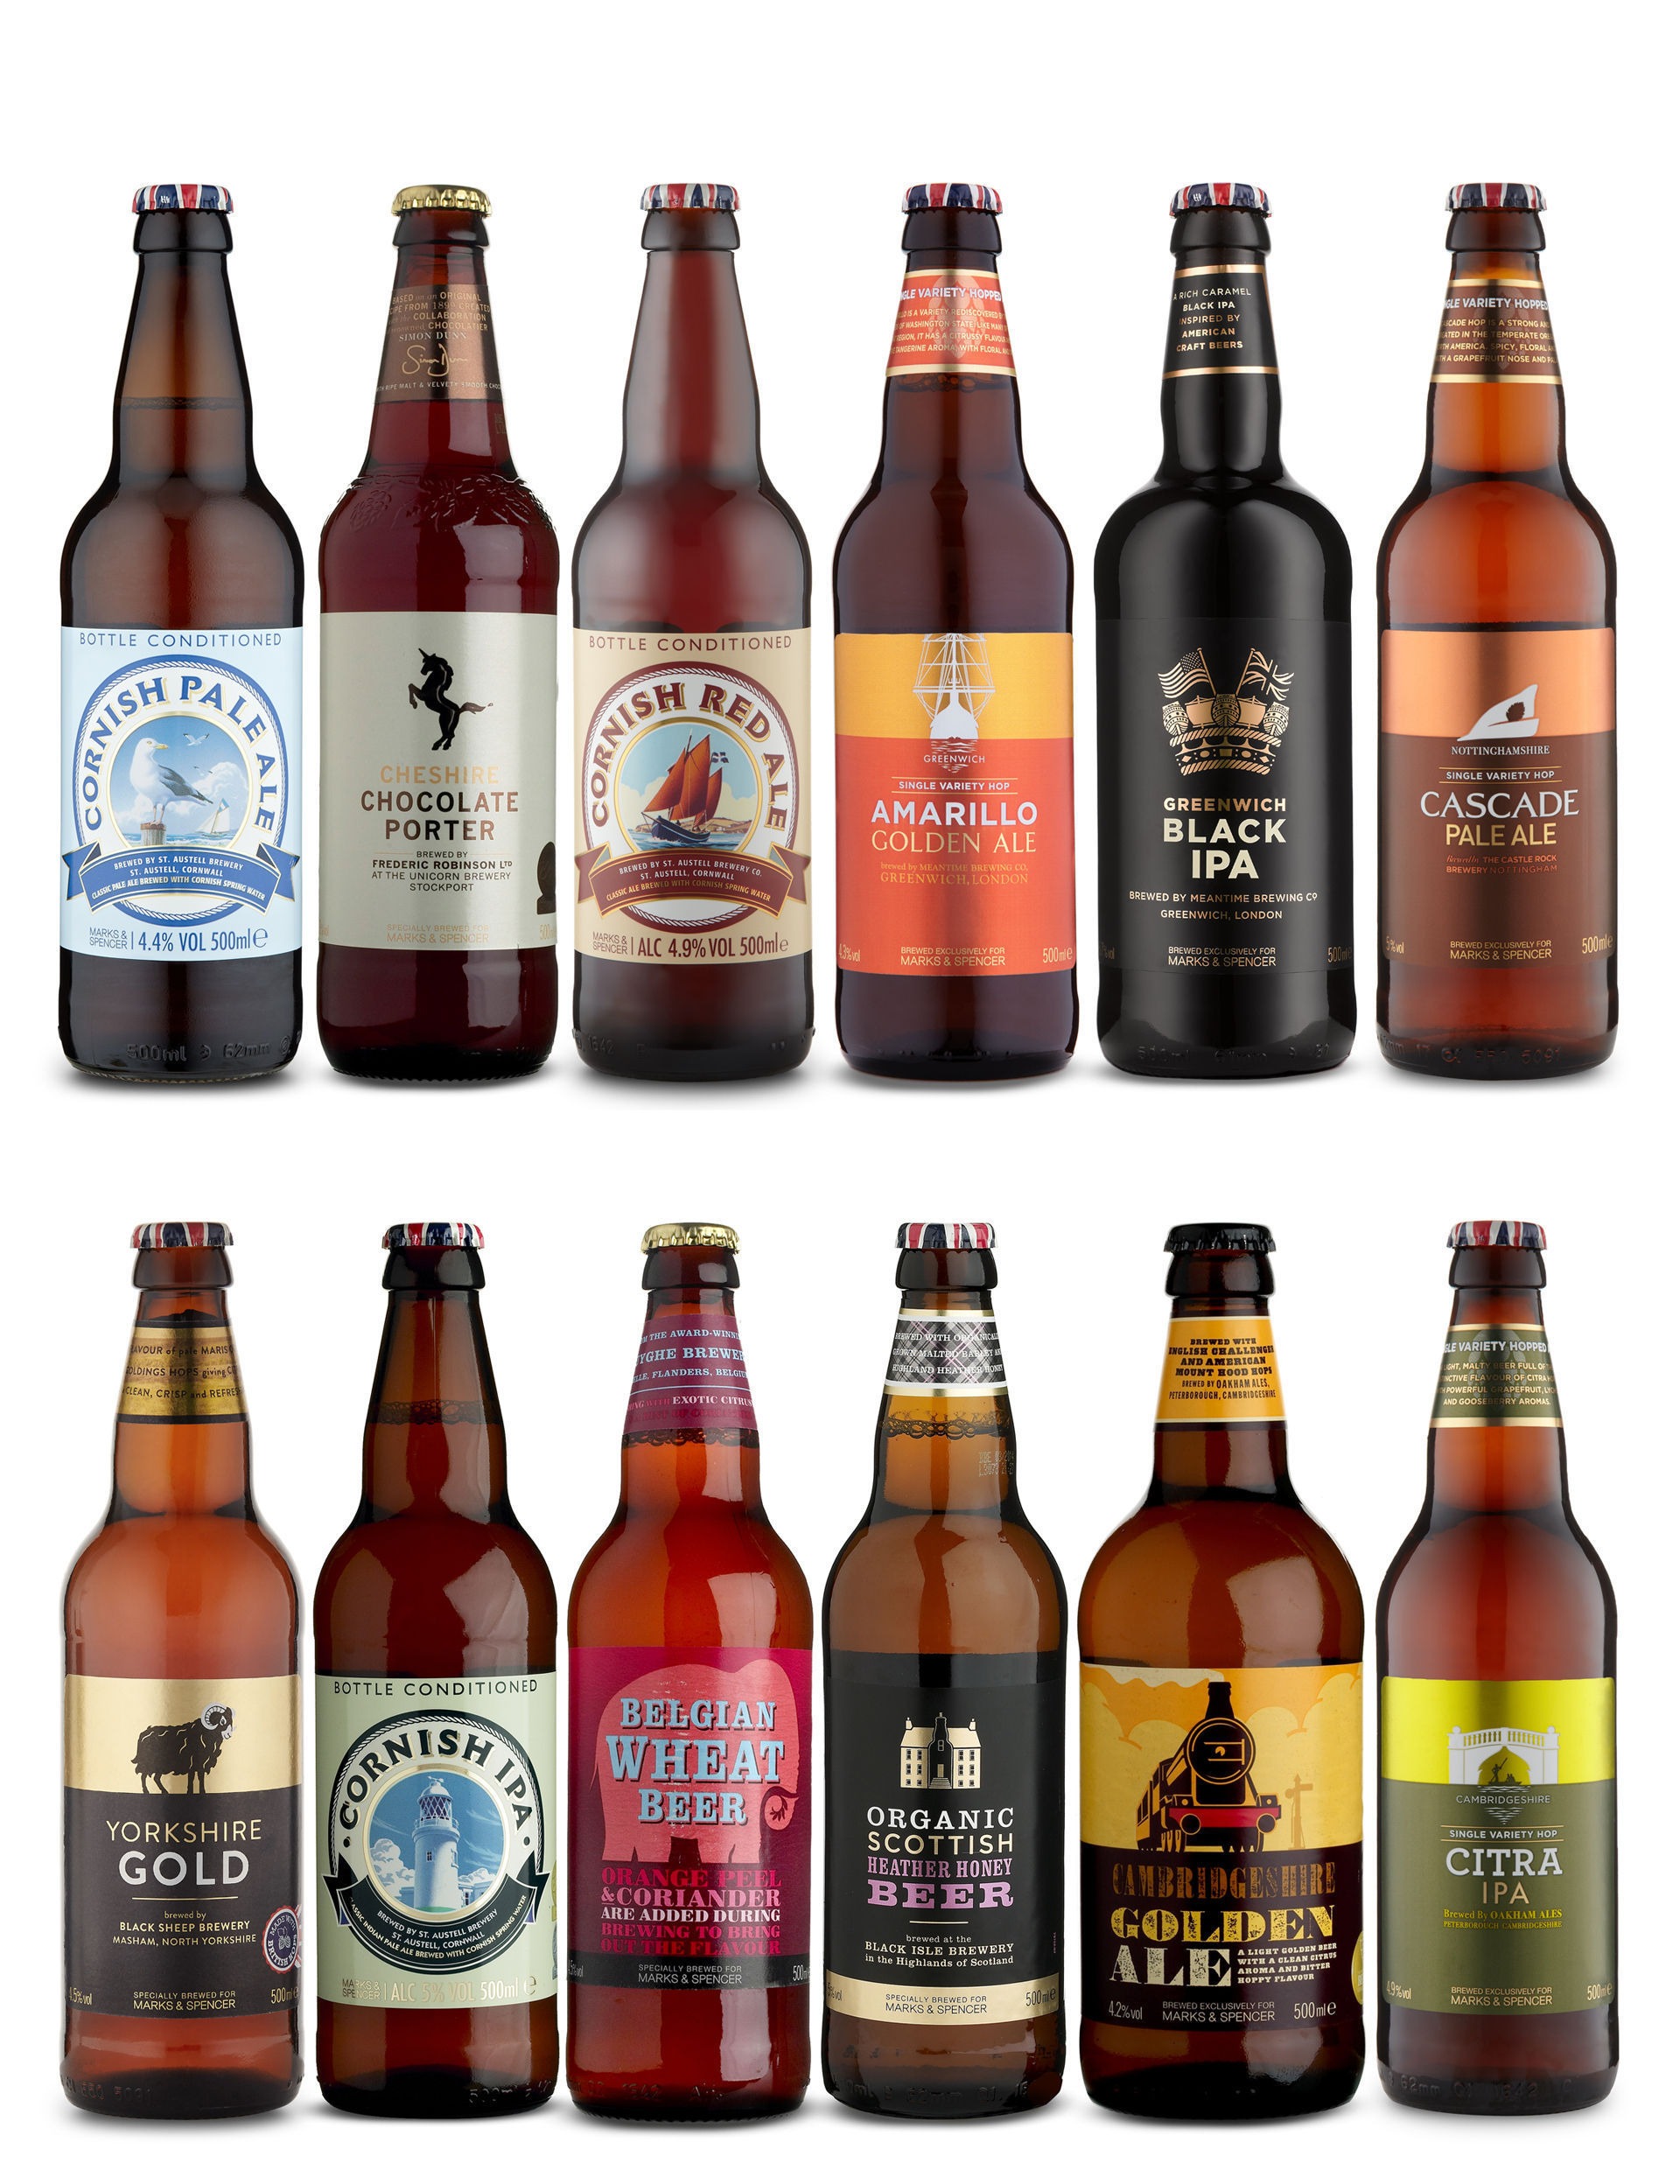 A selection of beer selected especially for women has been launched by Marks and Spencer for Mother's Day